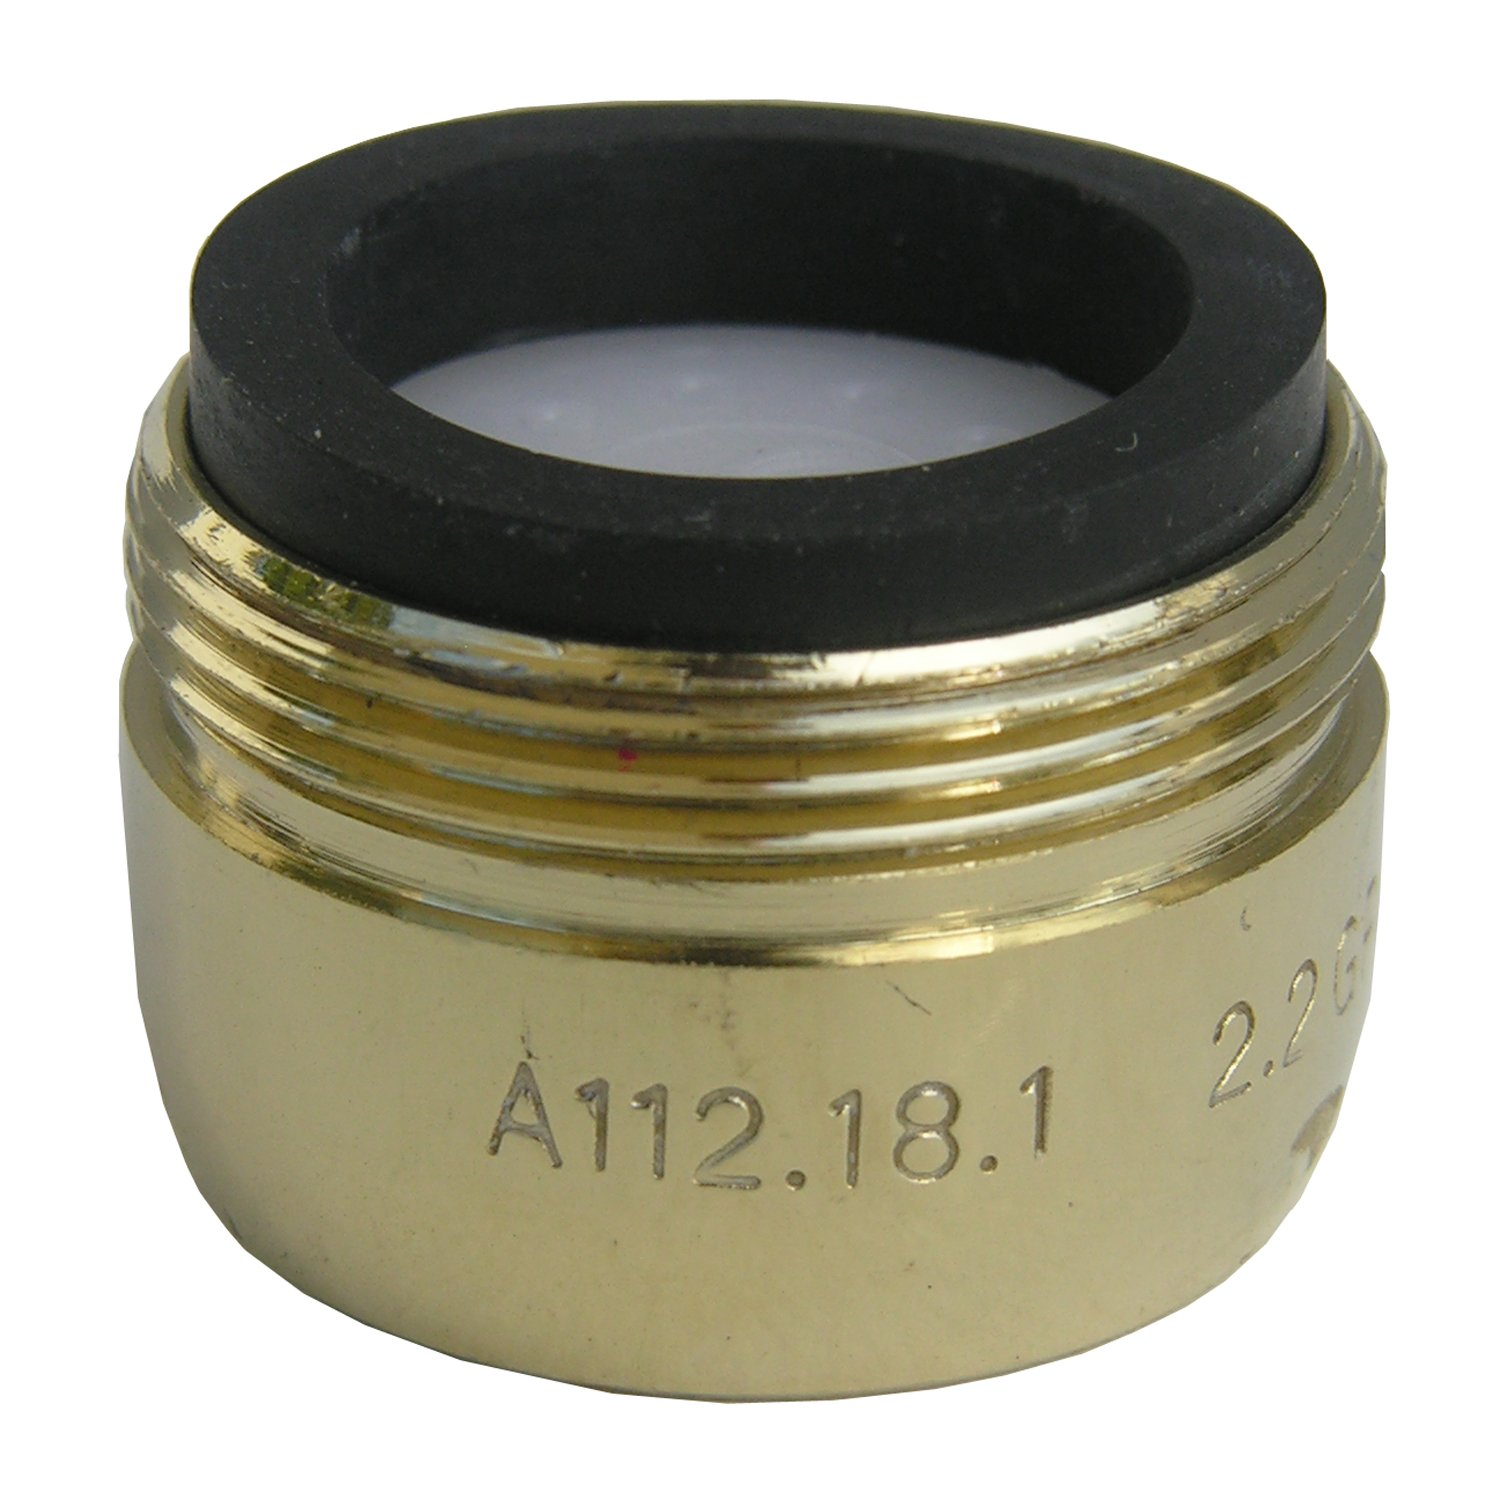 LASCO 09-1983 Small Male Faucet Aerator with 13/16 x 27 Thread, Polished Brass